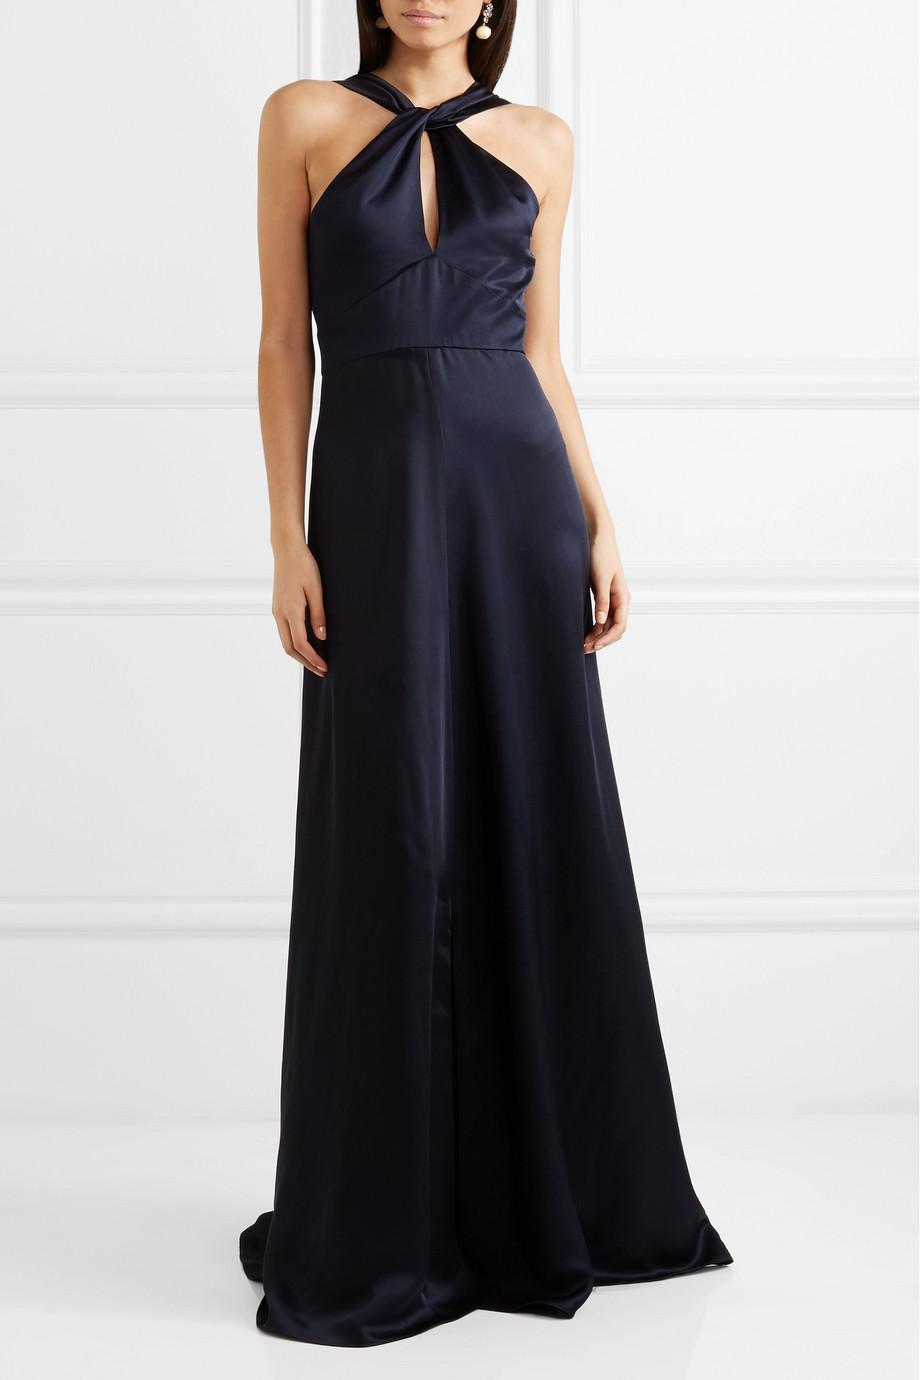 Aviator Open-back Satin Gown - Navy Temperley London Cheap Sale Discounts Clearance Wide Range Of Clearance Visit GT7rNvu7BB